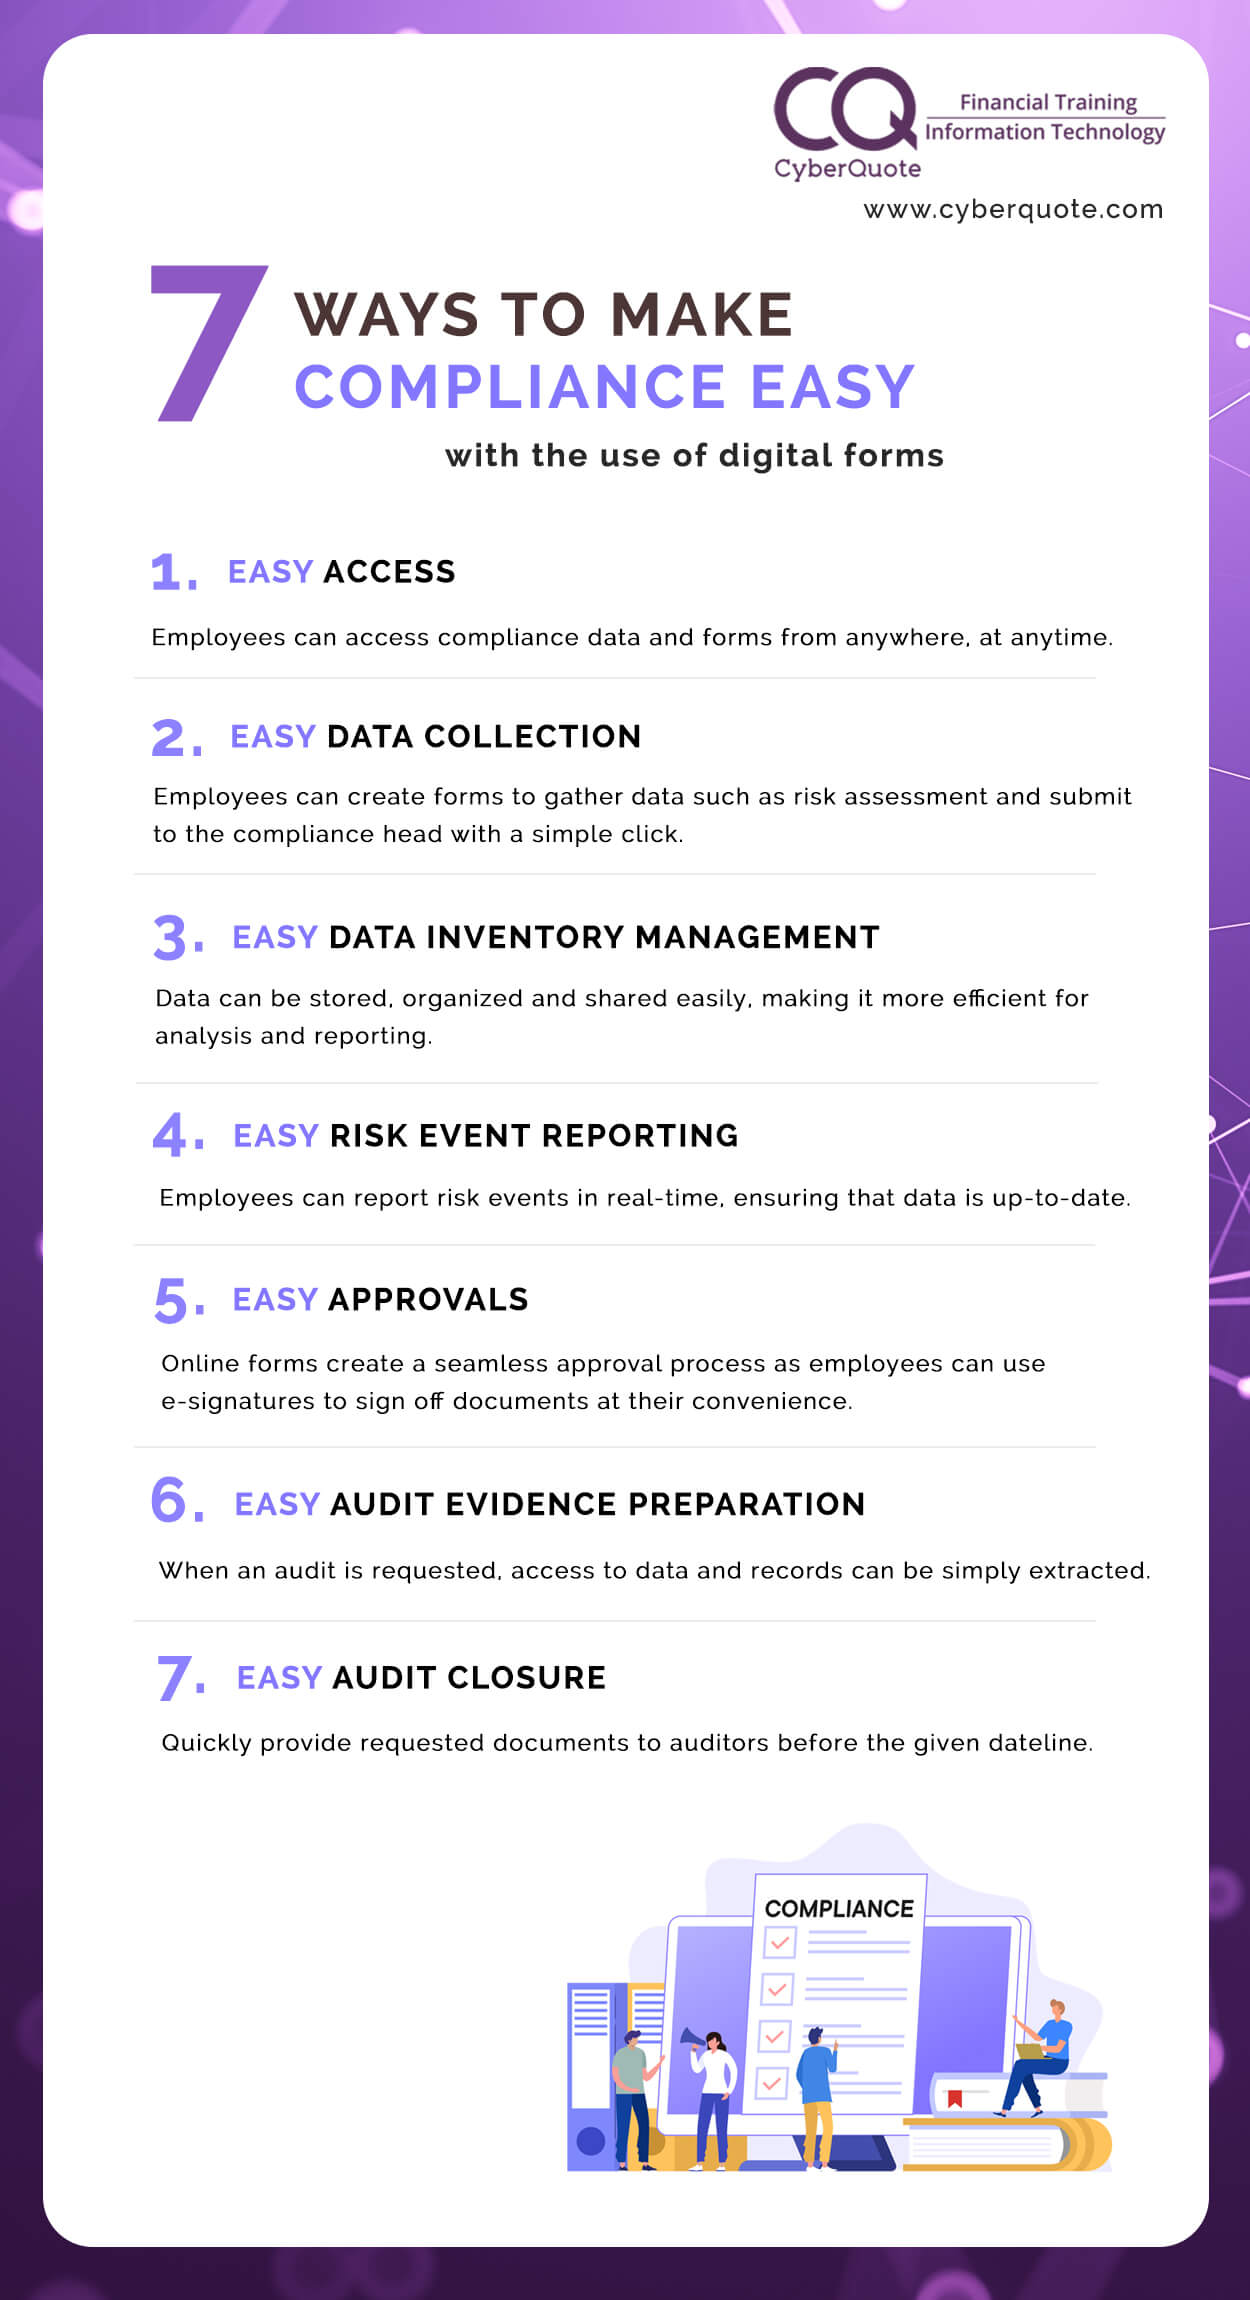 7 Ways to Make Compliance Easy